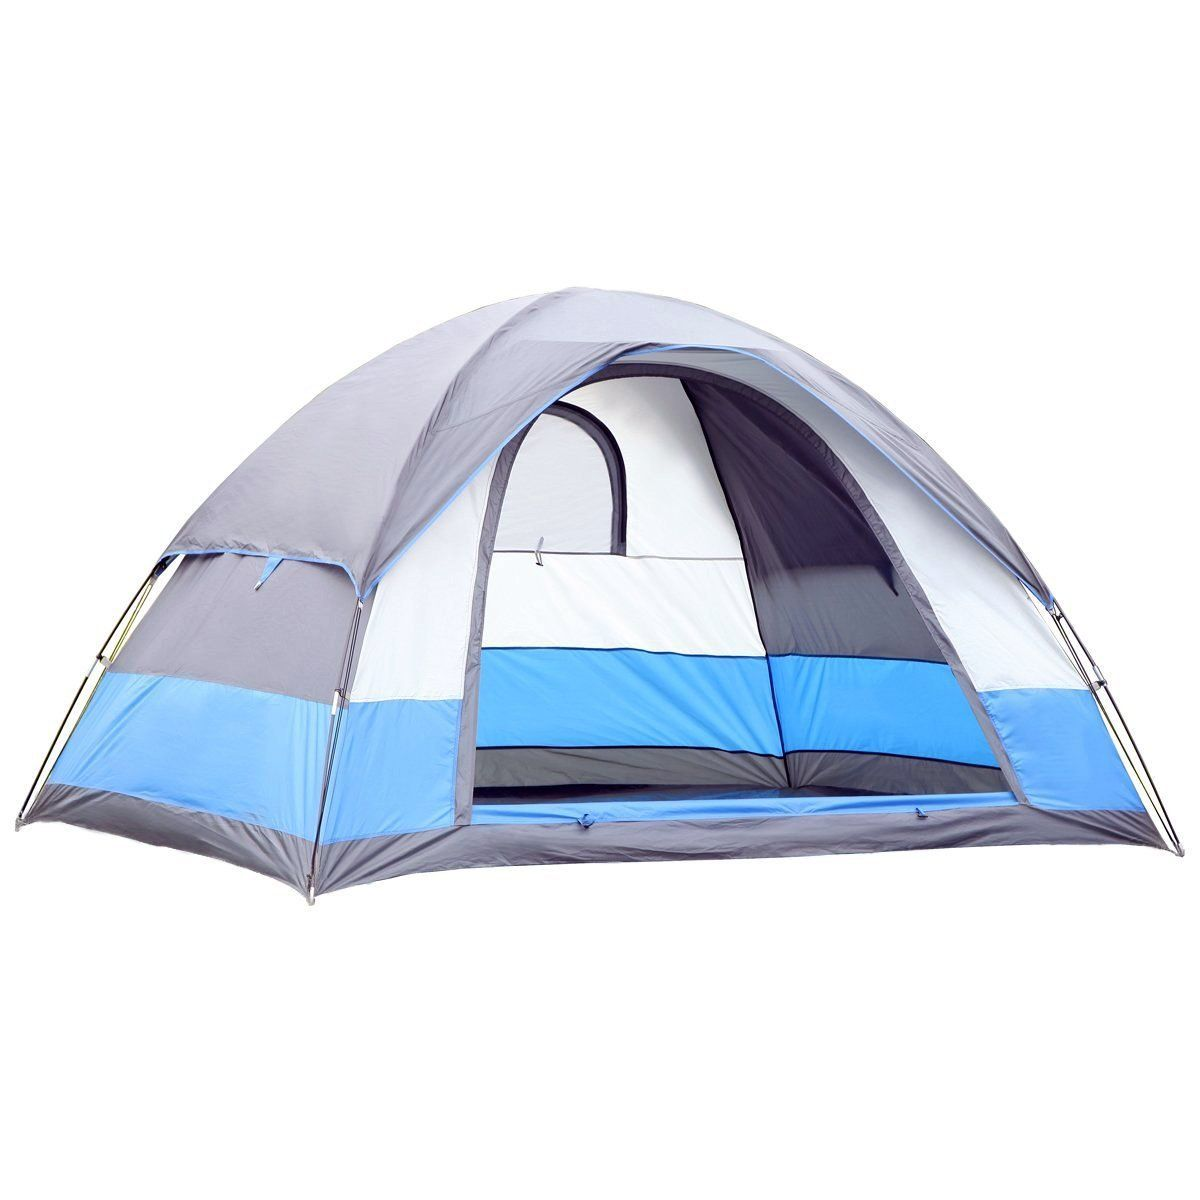 Semoo Water Resistant 5 Person 3-Season Lightweight Family Dome Tent for C&ing with Carry  sc 1 st  Pinterest & Semoo Water Resistant 5 Person 3-Season Lightweight Family Dome ...